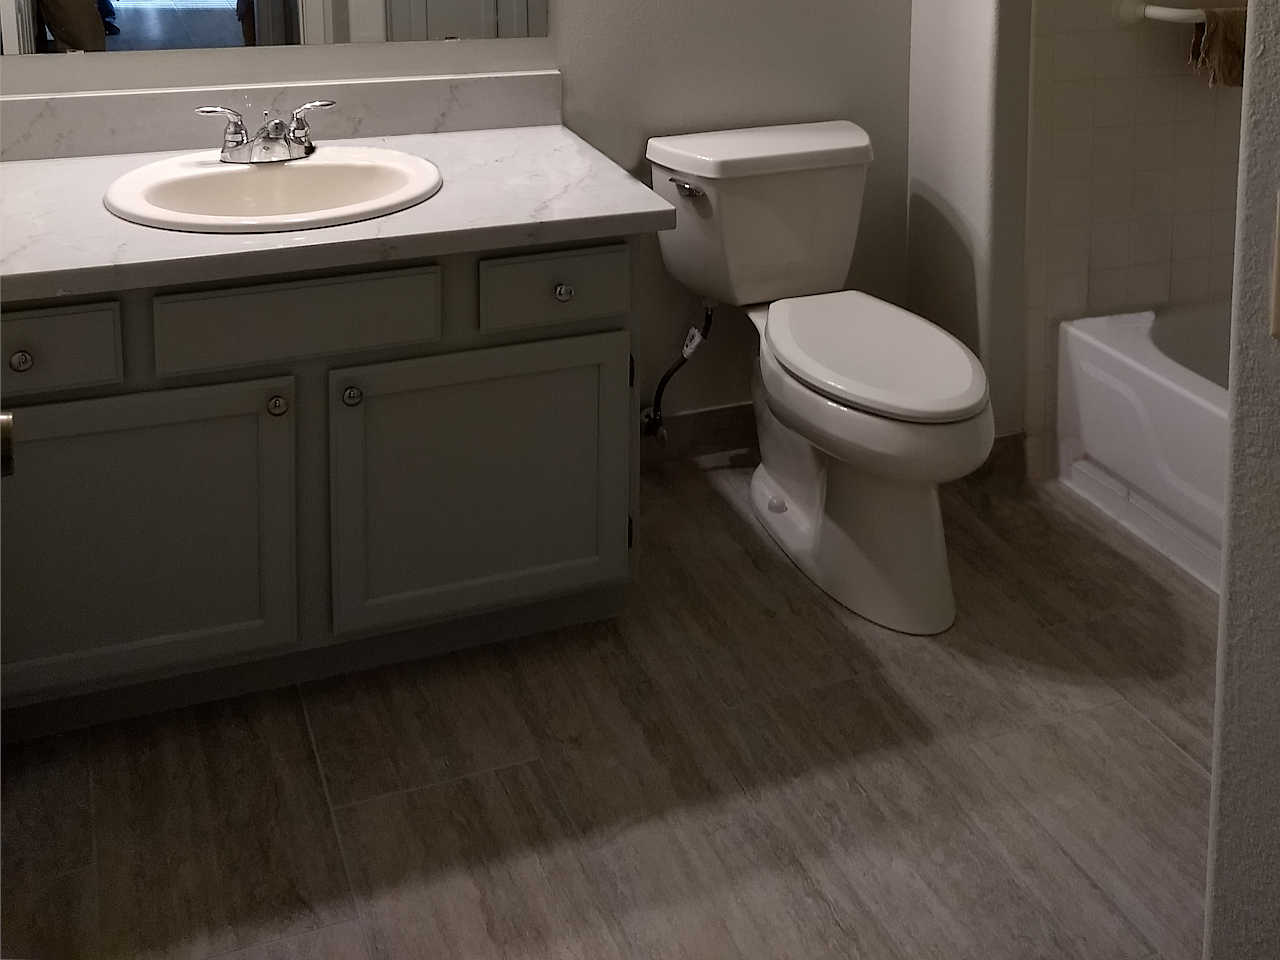 gray-12x24-tile-gray-vanity-quartz-countertop-1.1